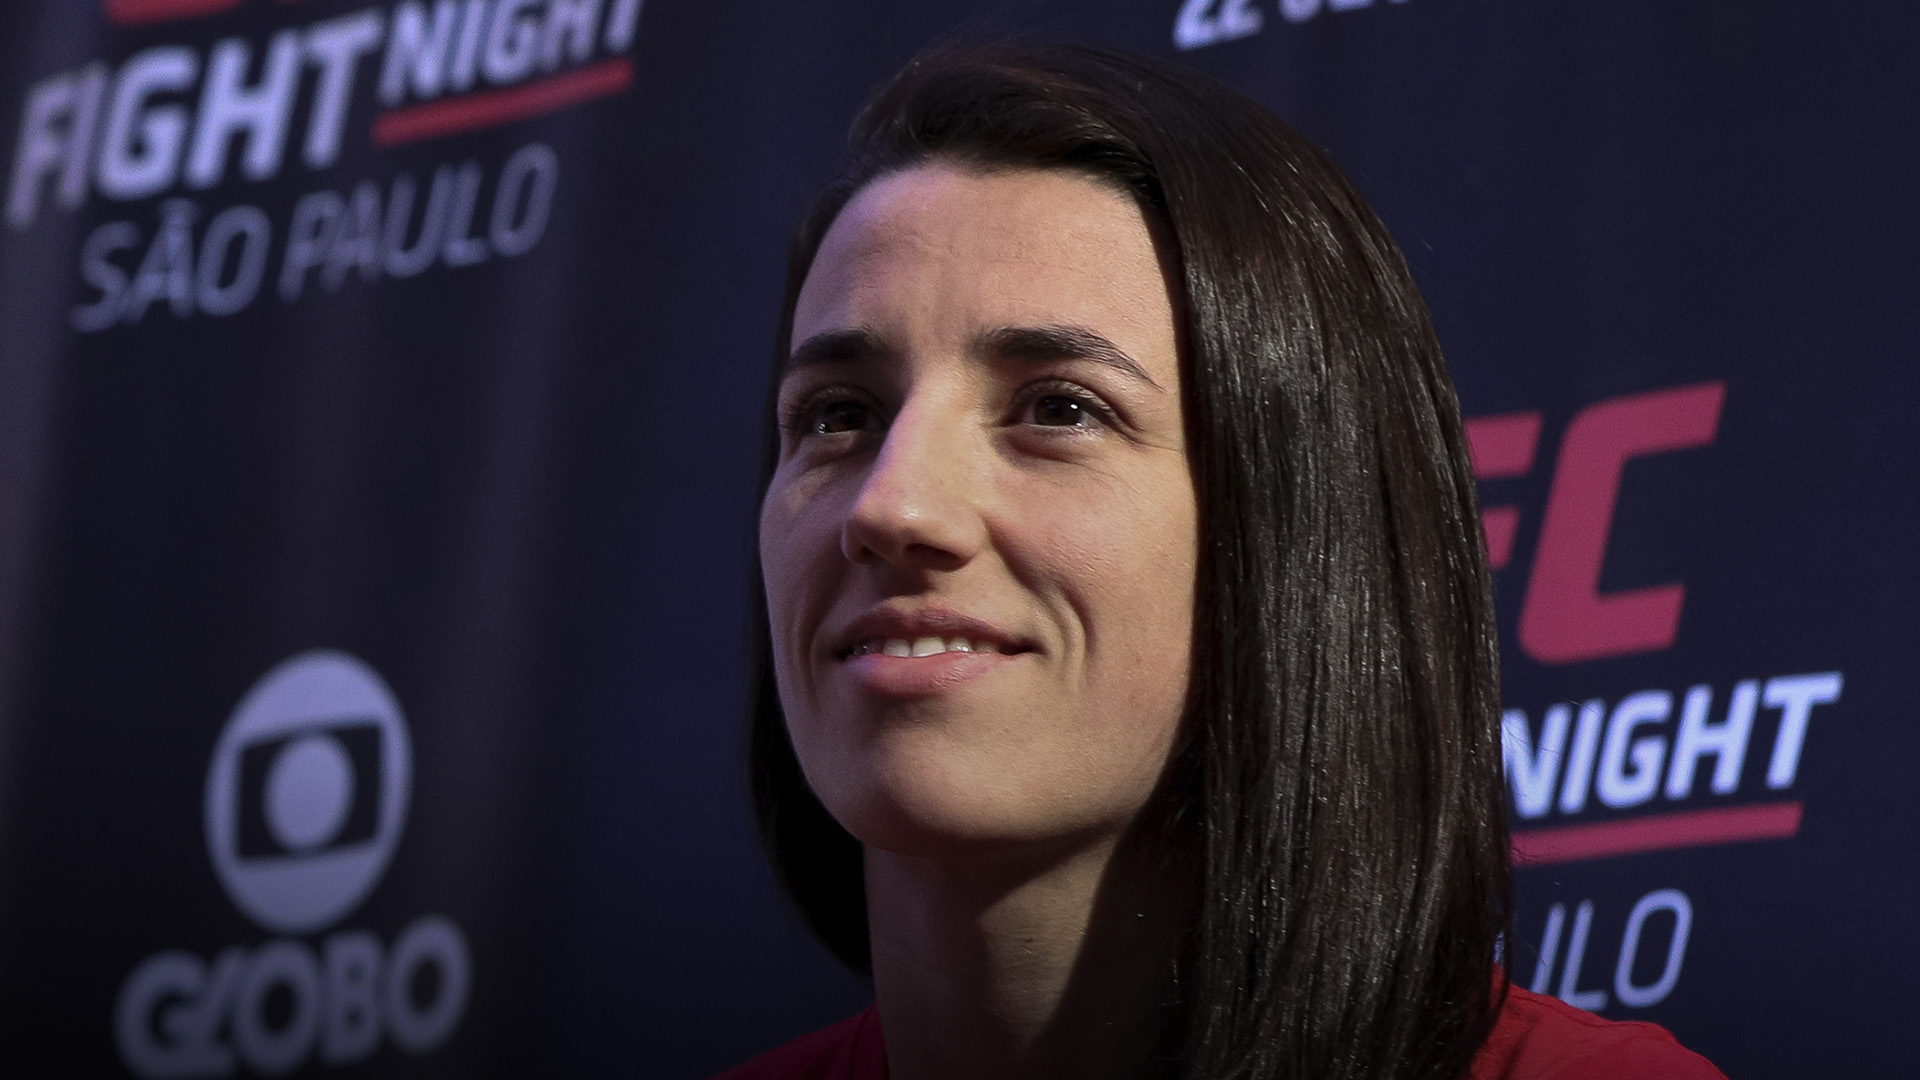 Marina Rodriguez of Brazil interacts with media during the UFC Fight Night ultimate media day at Pestana Hotel on September 20, 2018 in Sao Paulo, Brazil. (Photo by Buda Mendes/Zuffa LLC)